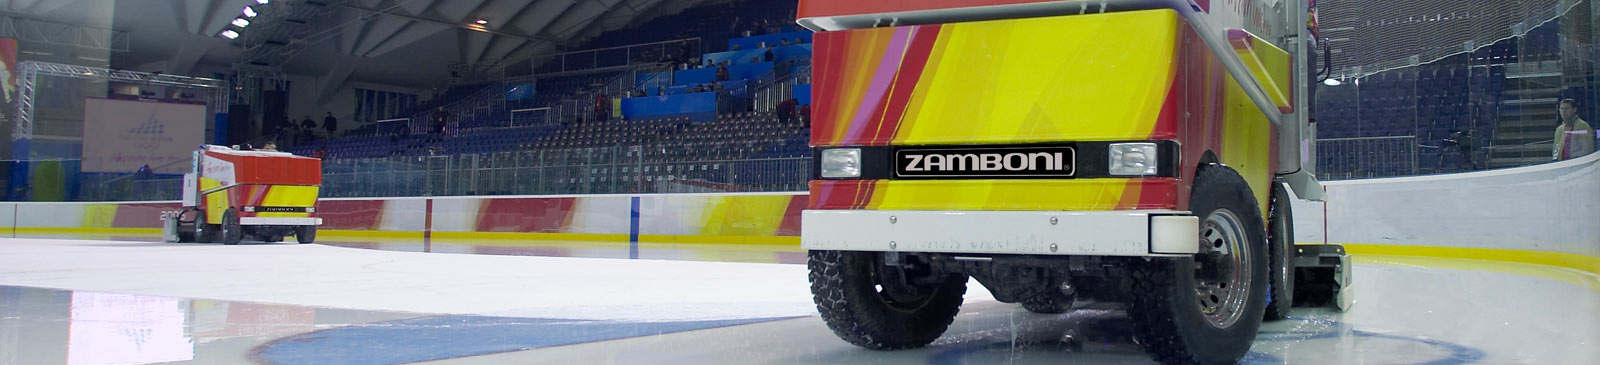 Zamboni | Nothing else is even close